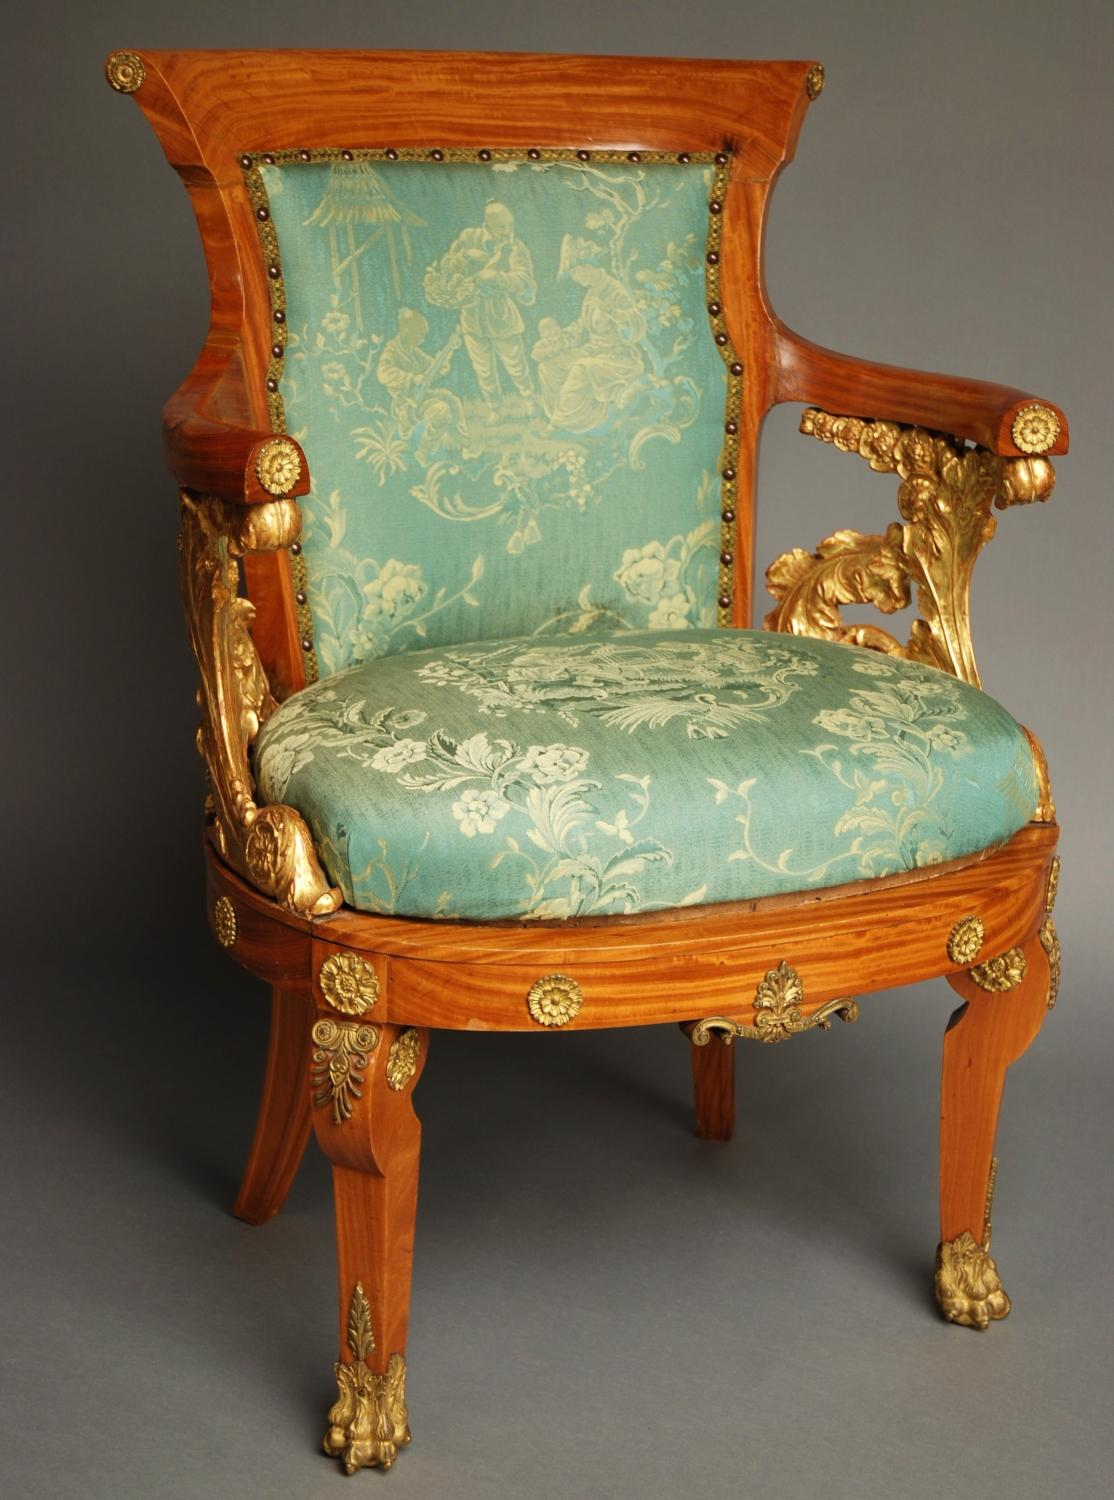 Late 19thc solid satinwood armchair